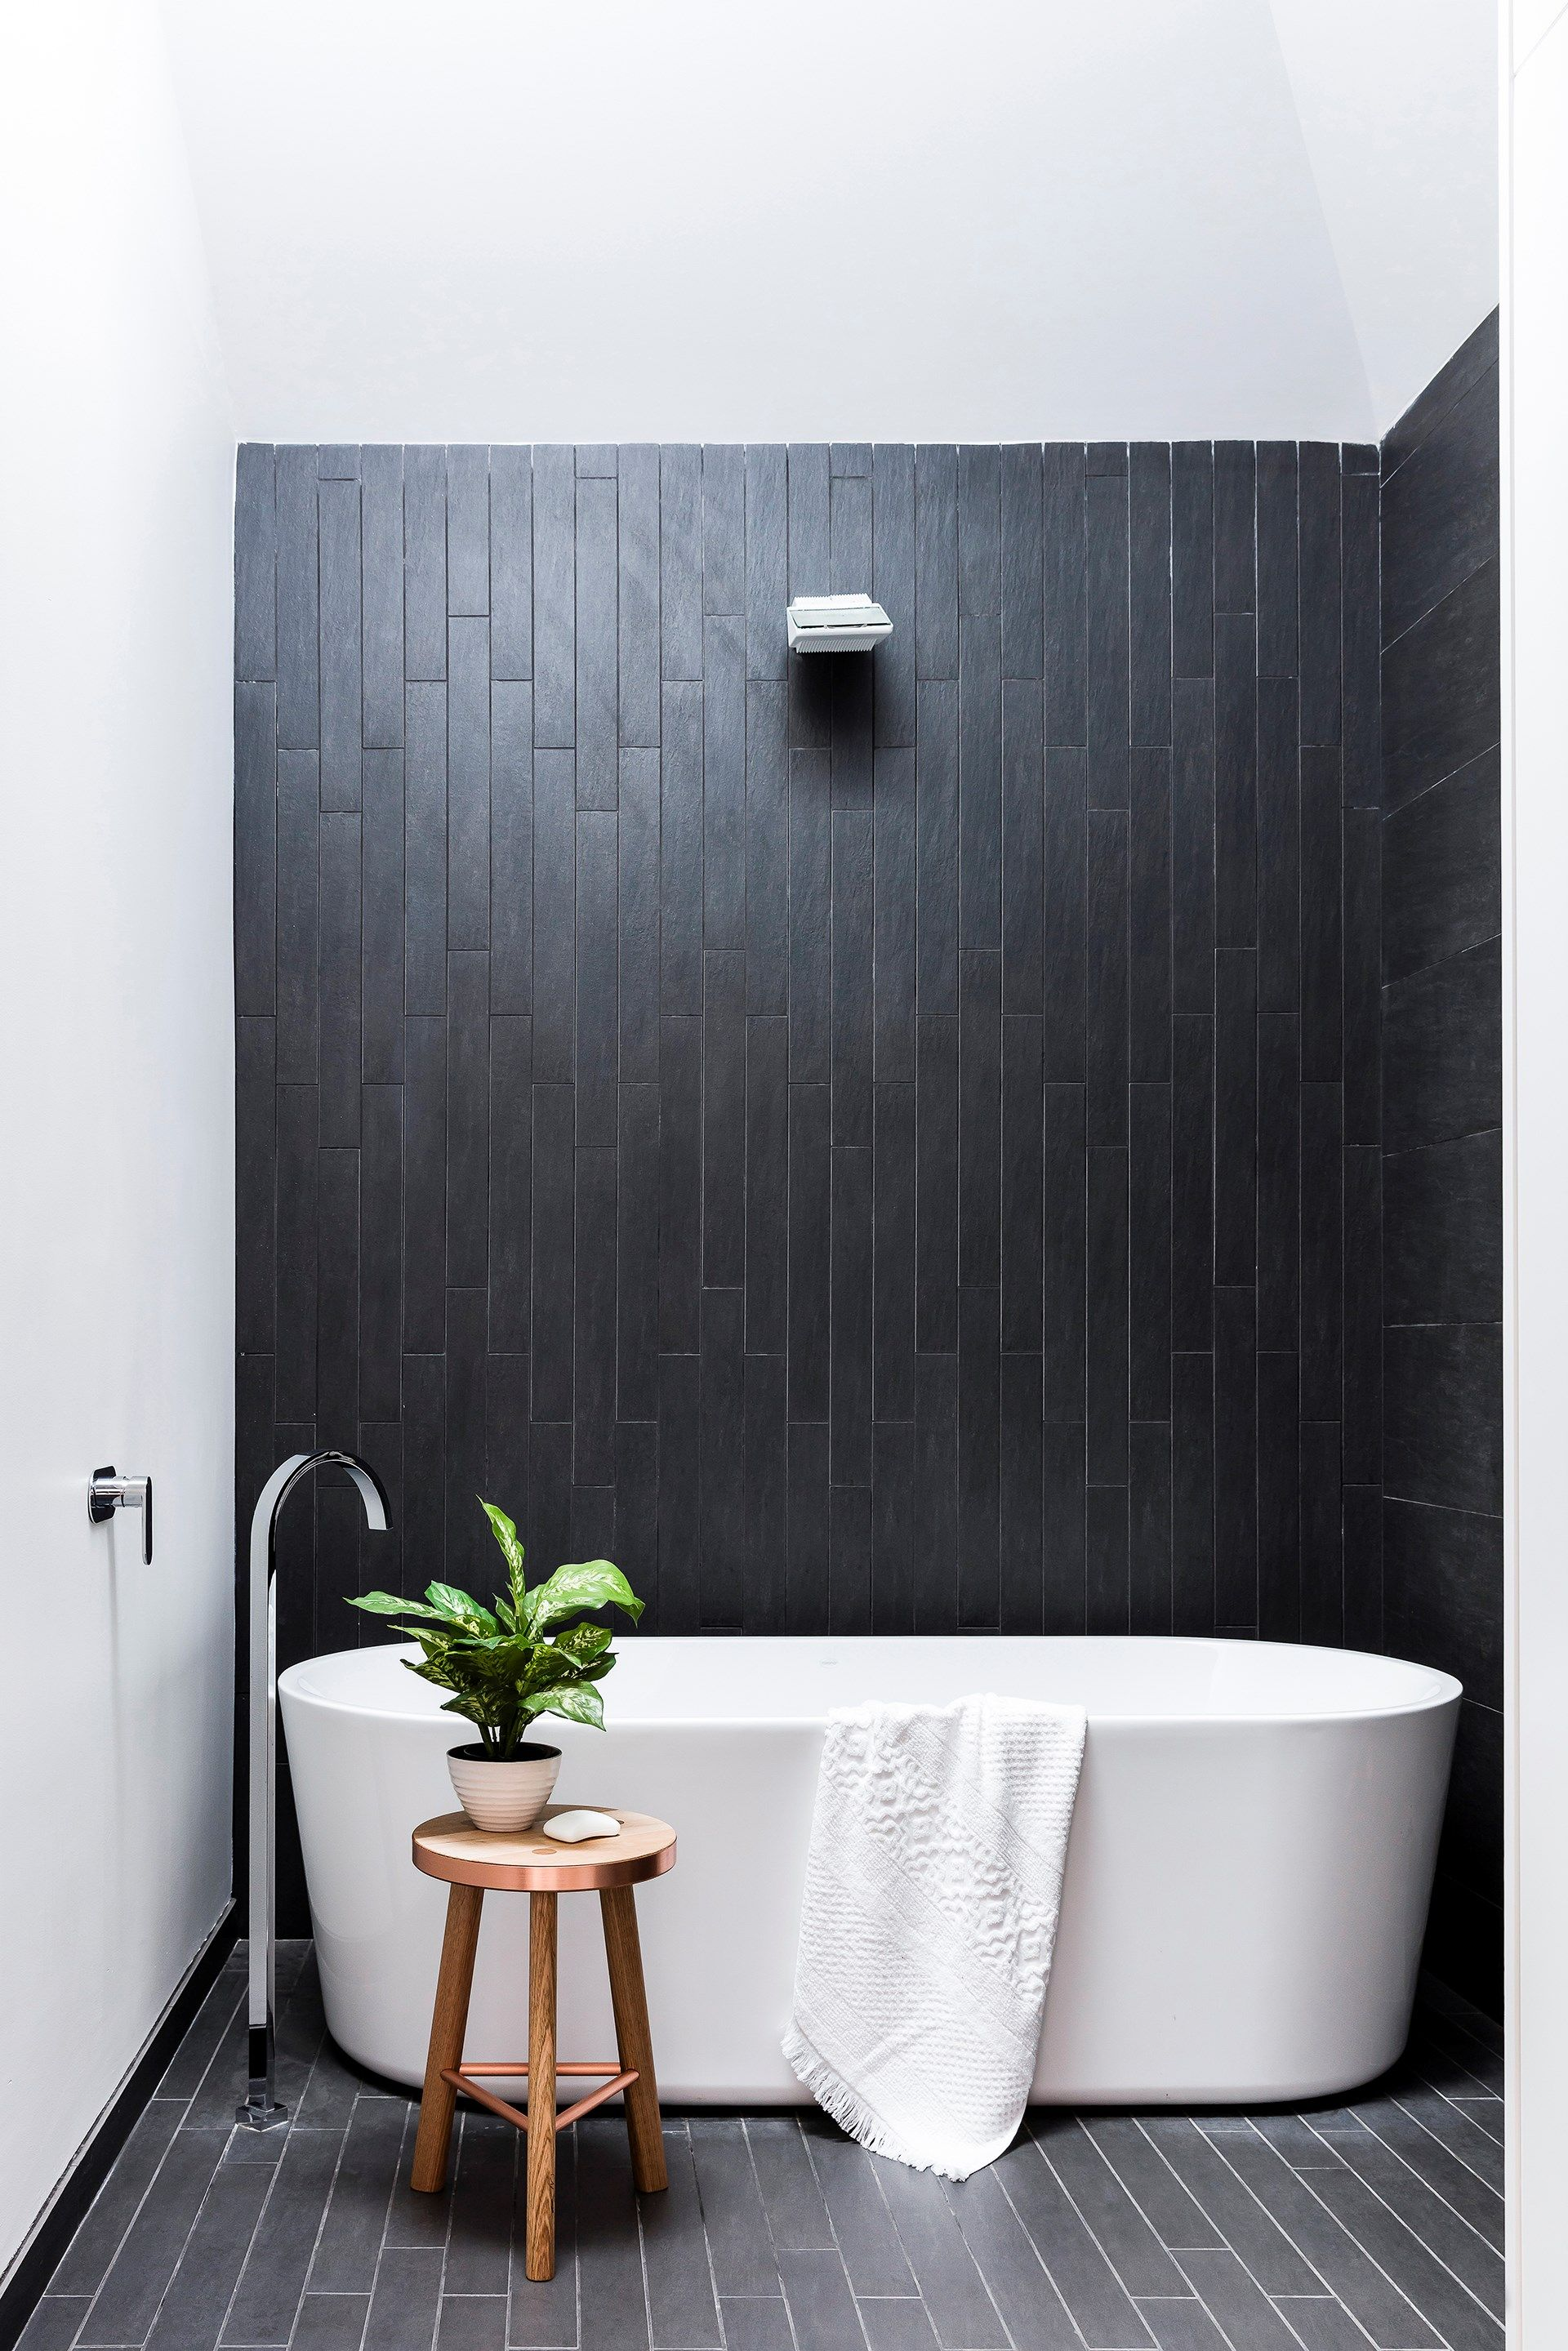 The charm of vintage bathrooms from 1940s interior design - A Lightwell Illuminates The Moody Charcoal Tiles In This Bathroom Within A Renovated 1940s Home